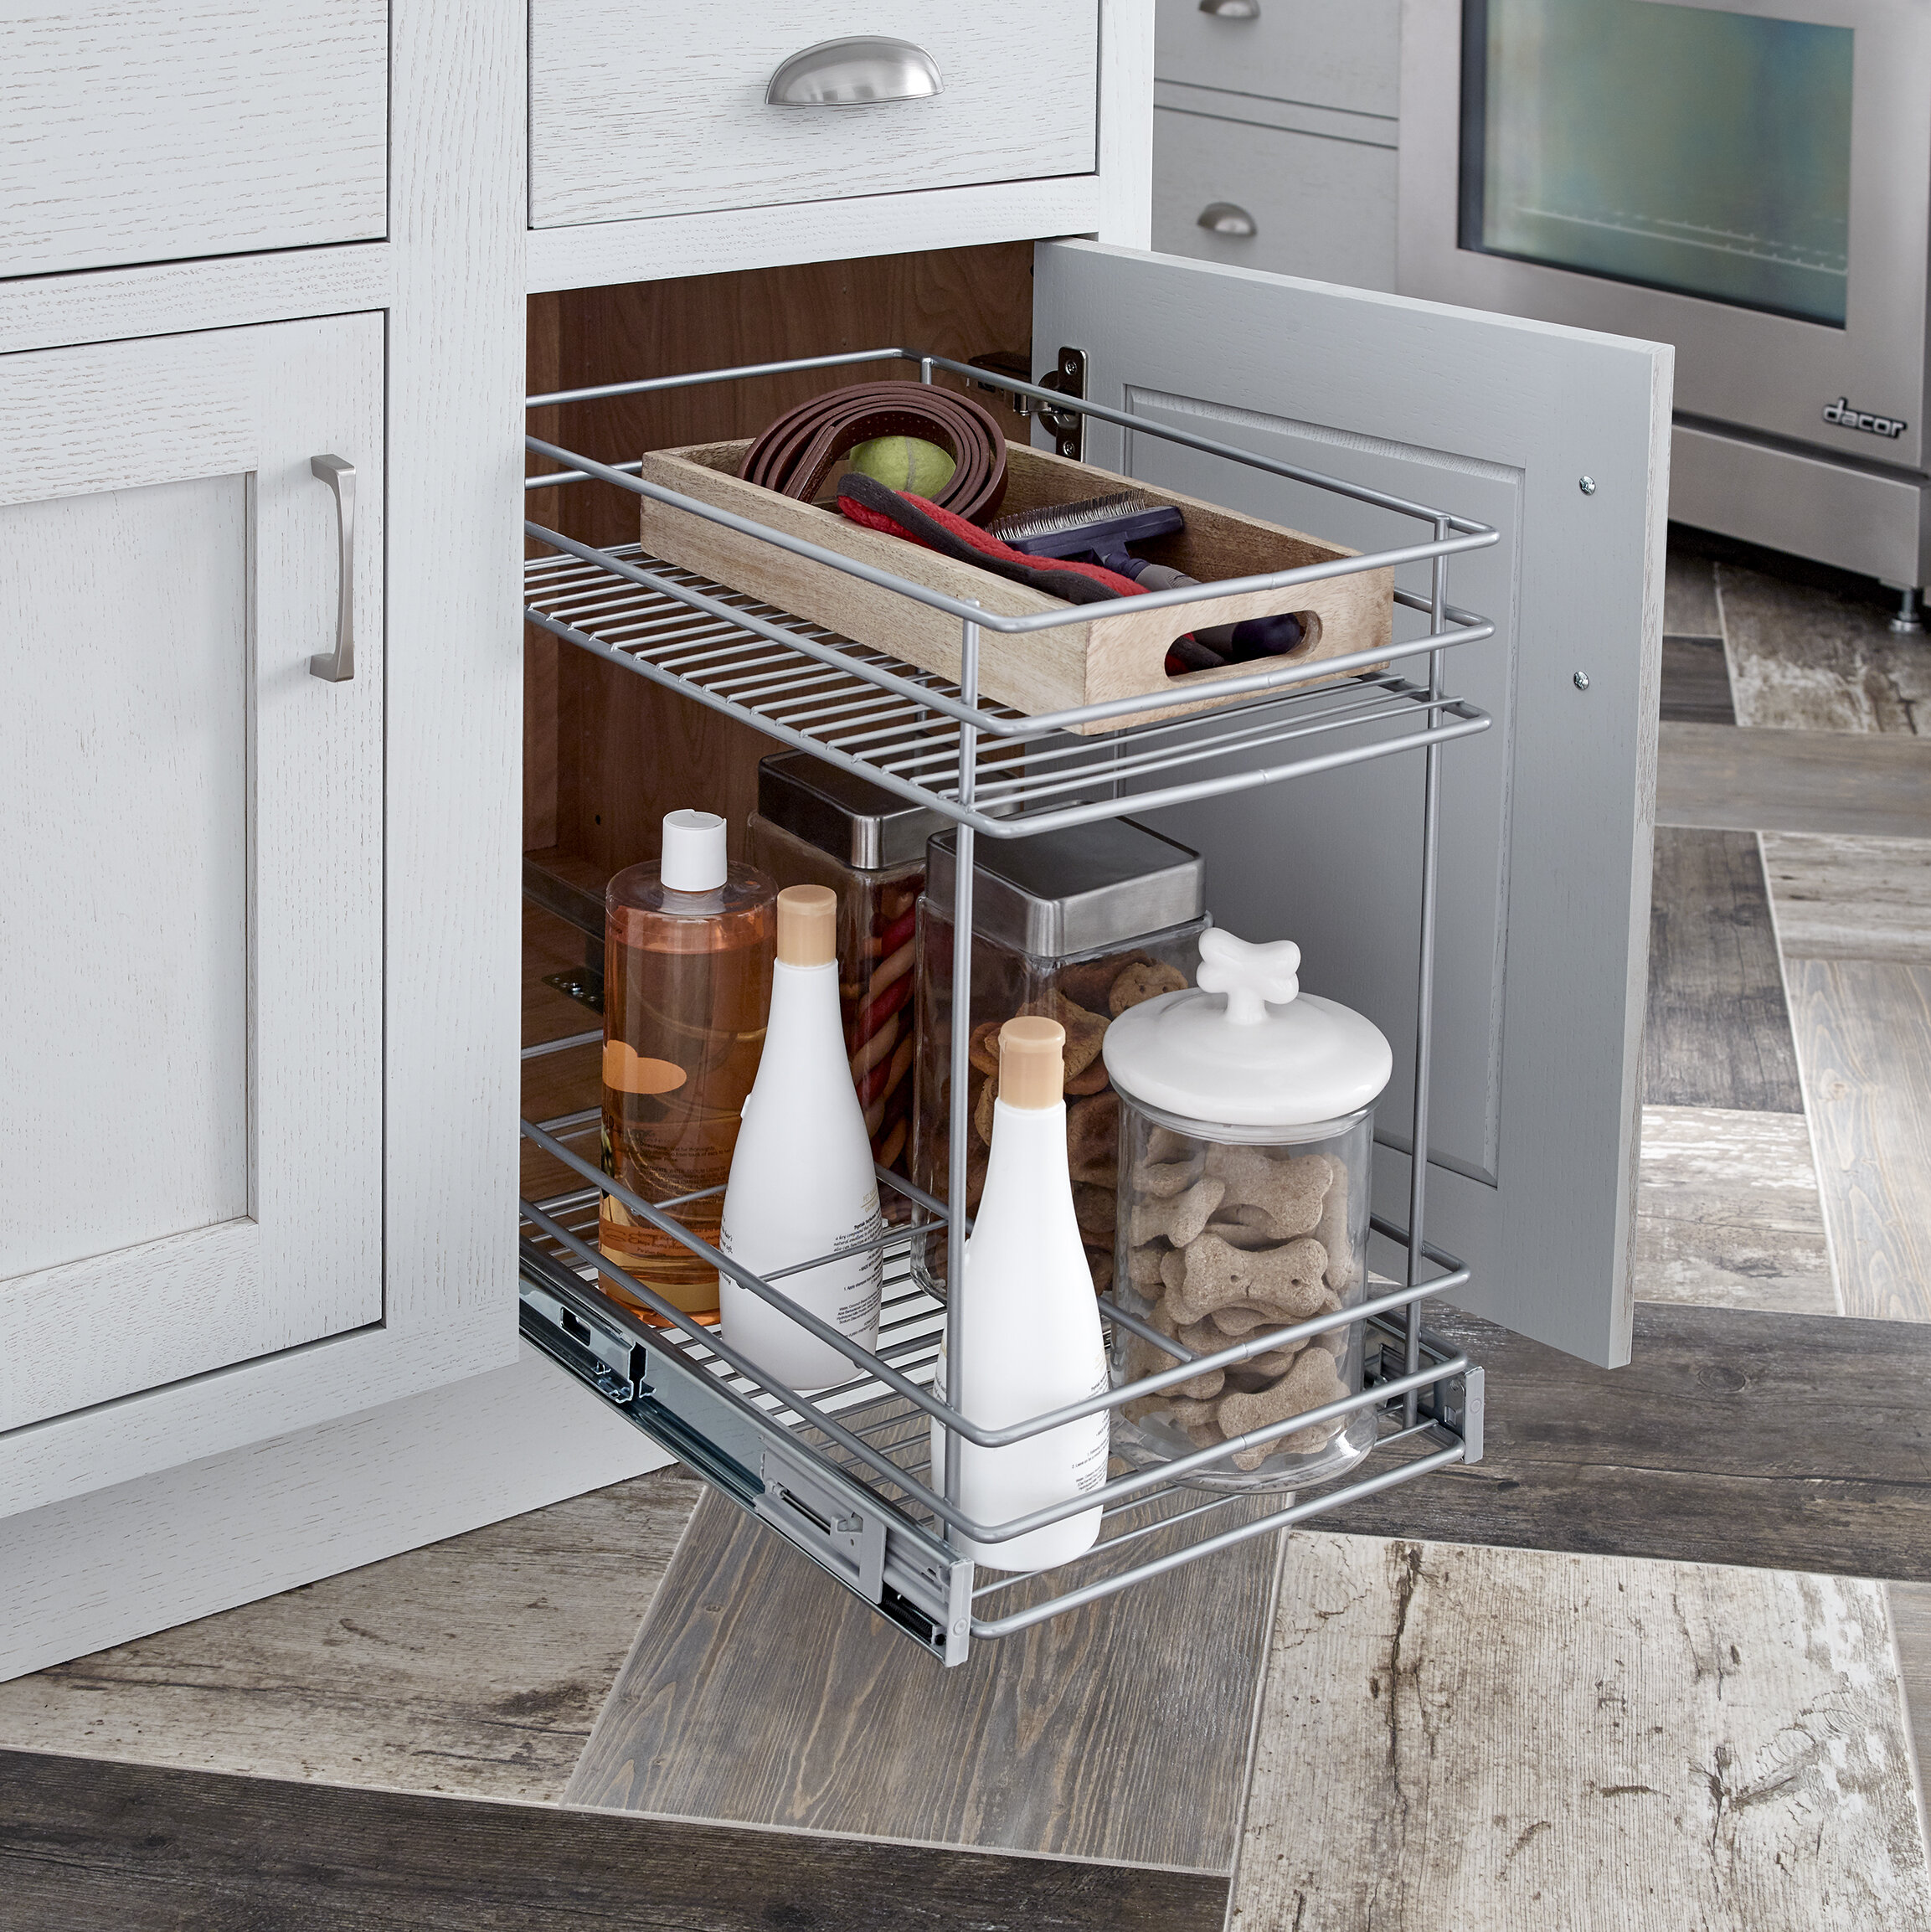 sliding organizer roll wayfair inch shelf a rev out lynk cookware x tier under reviews cabinet pull deep double tabletop pdx kitchen chrome wide two